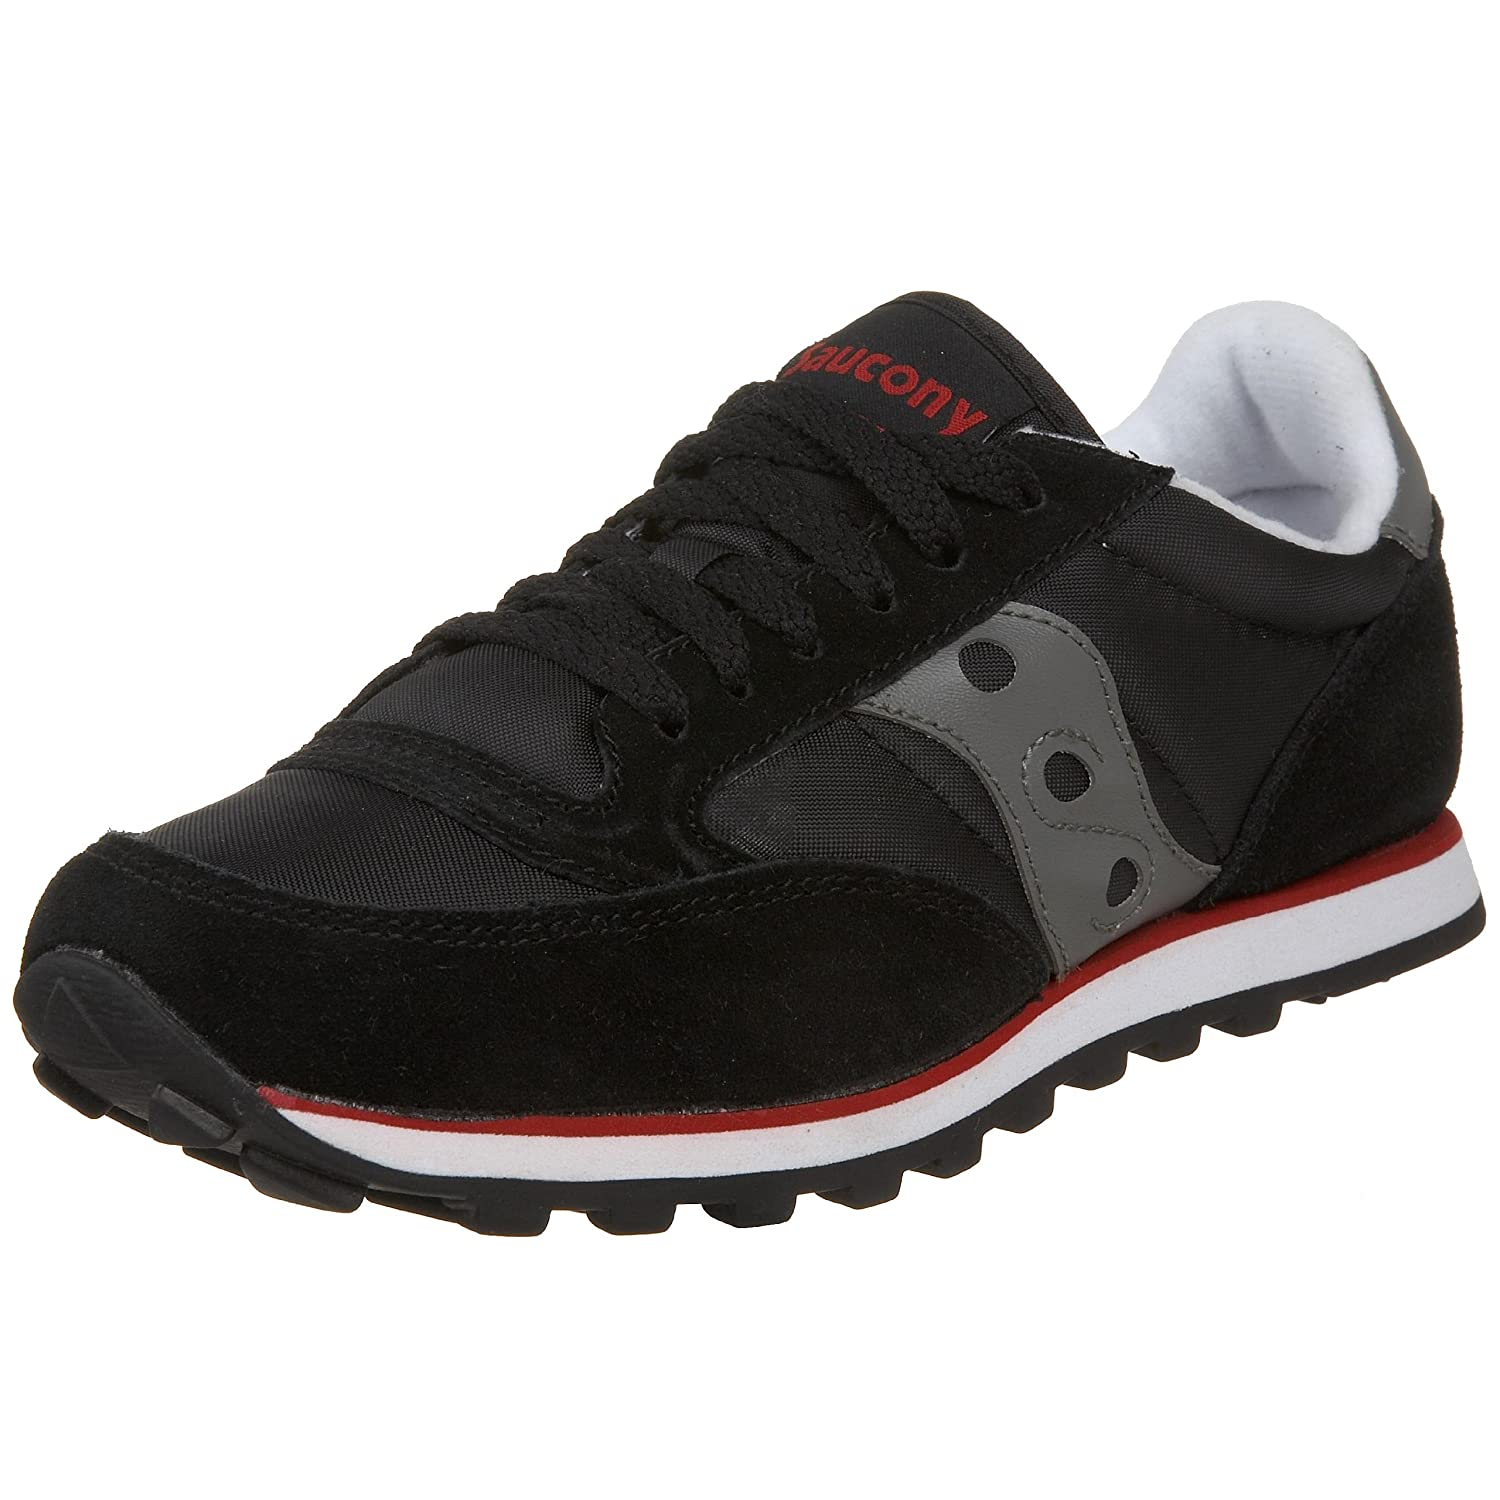 Sneakers donna Saucony Jazz Low Pro - Black/Gray/Red